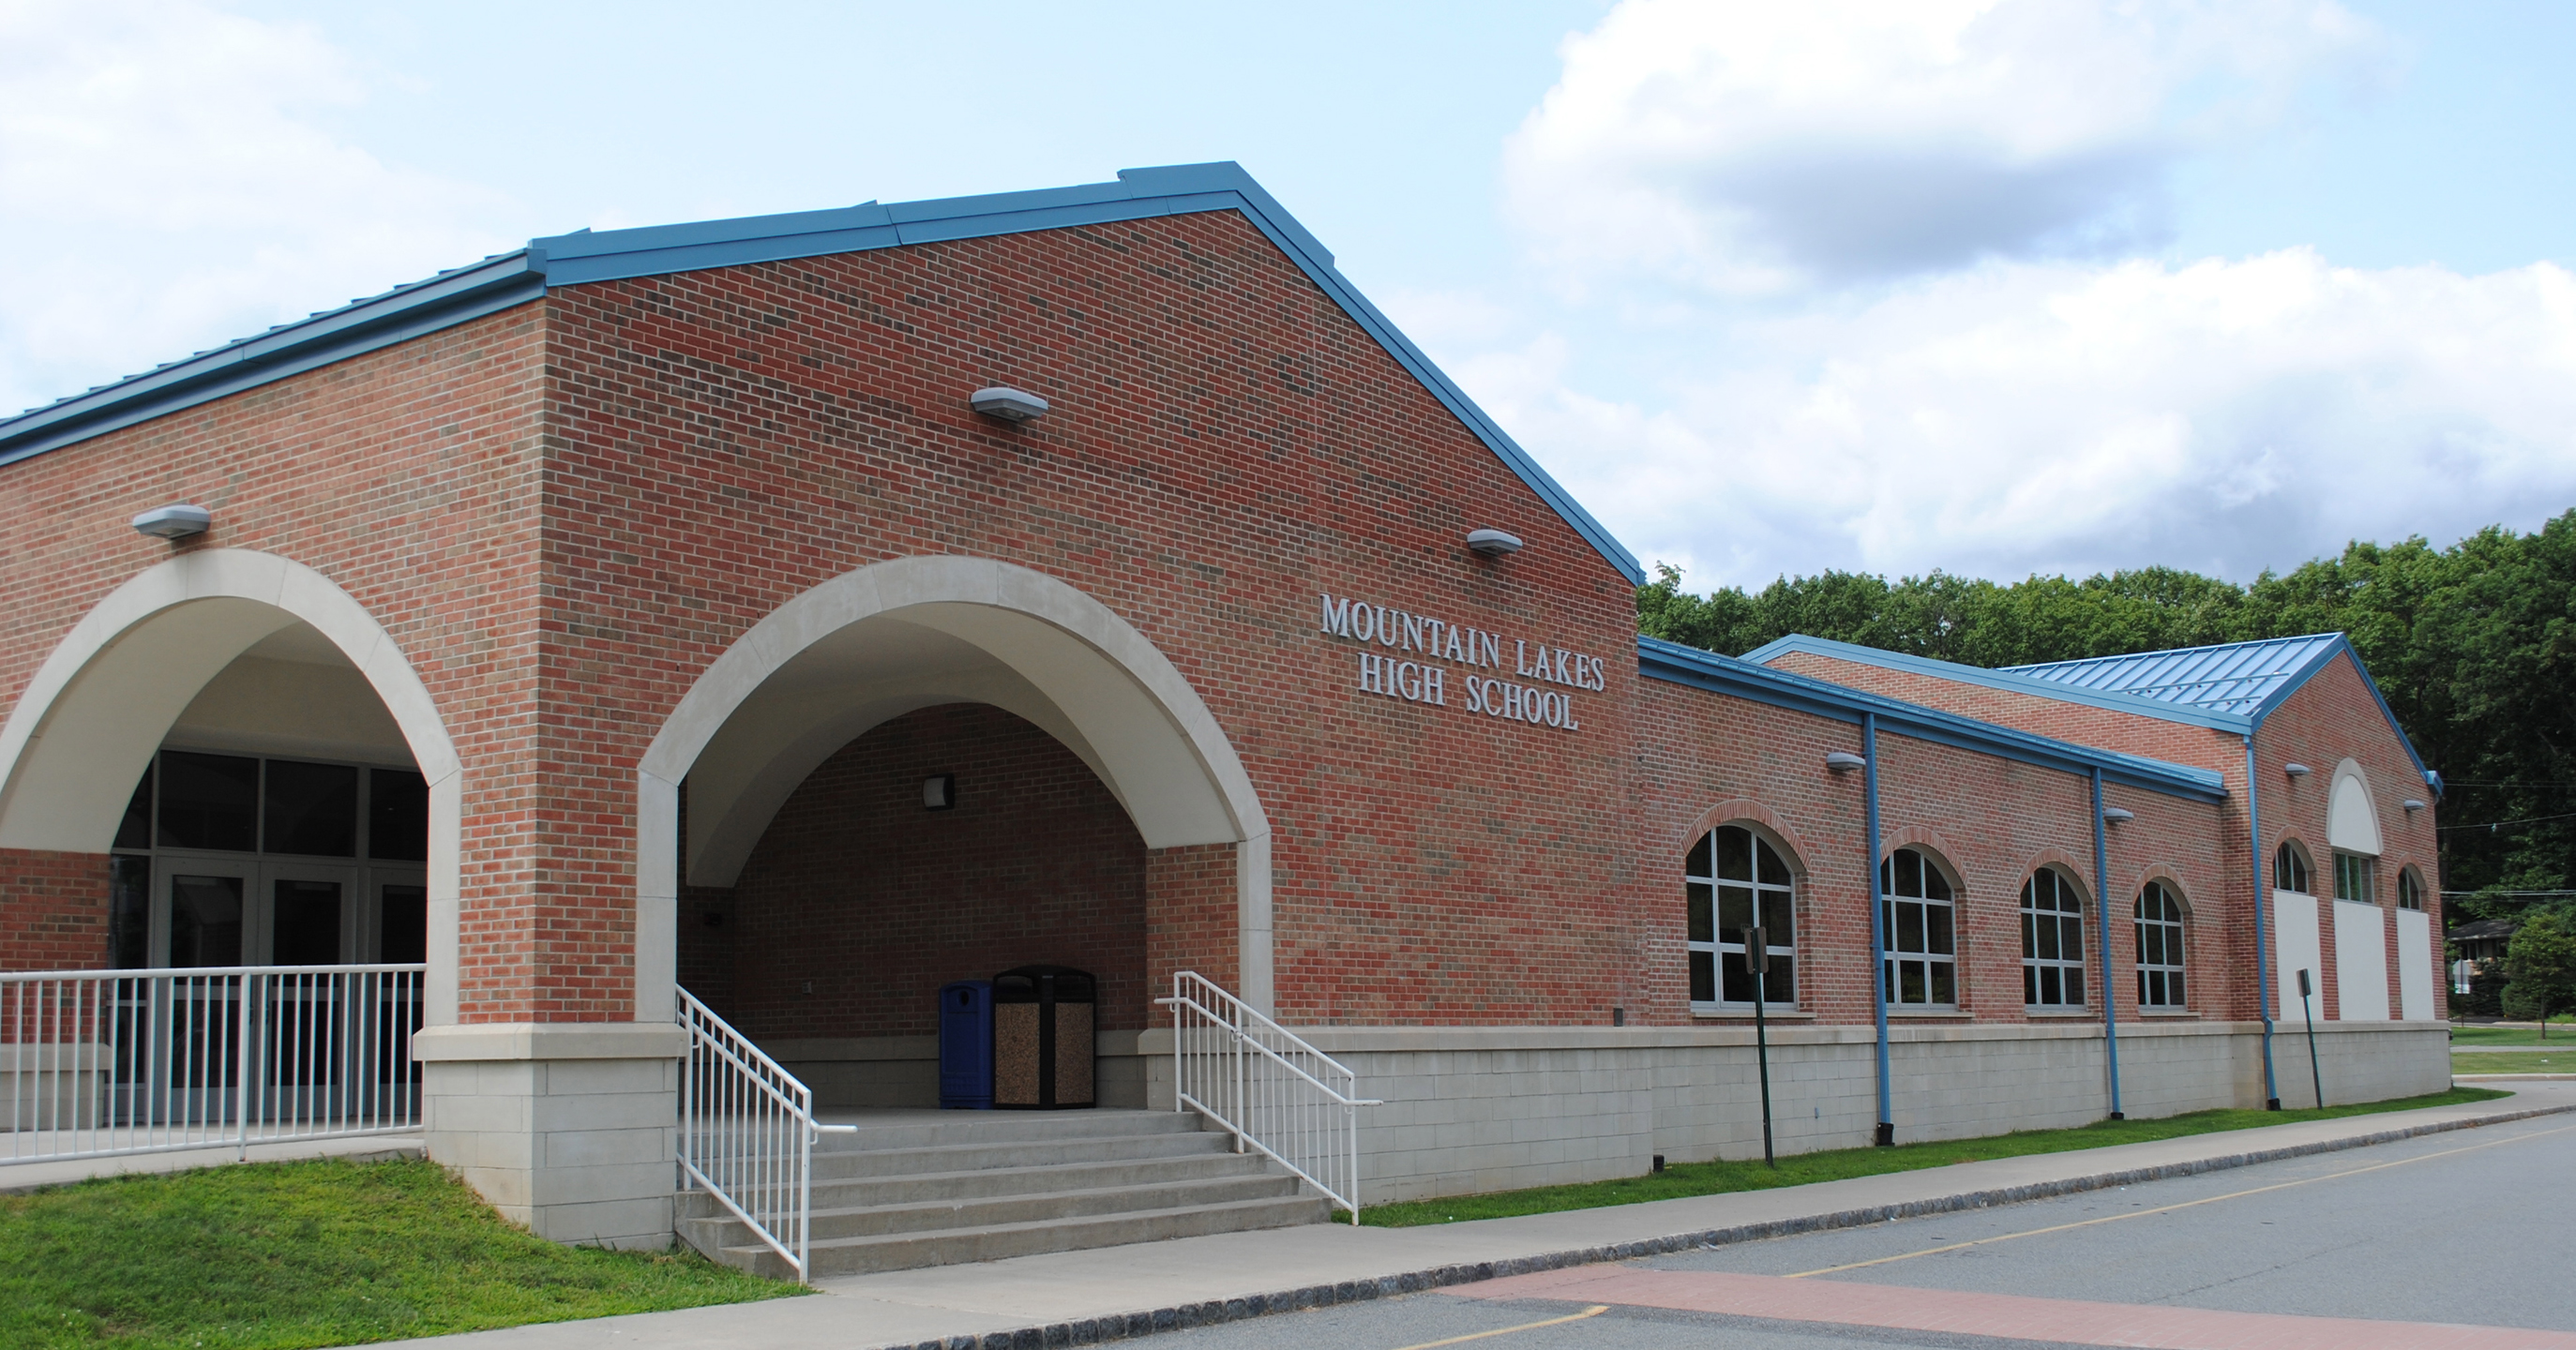 Last November, Mountain Lakes voters approved a major referendum for  renovations to all three schools in the Mountain Lakes School District.